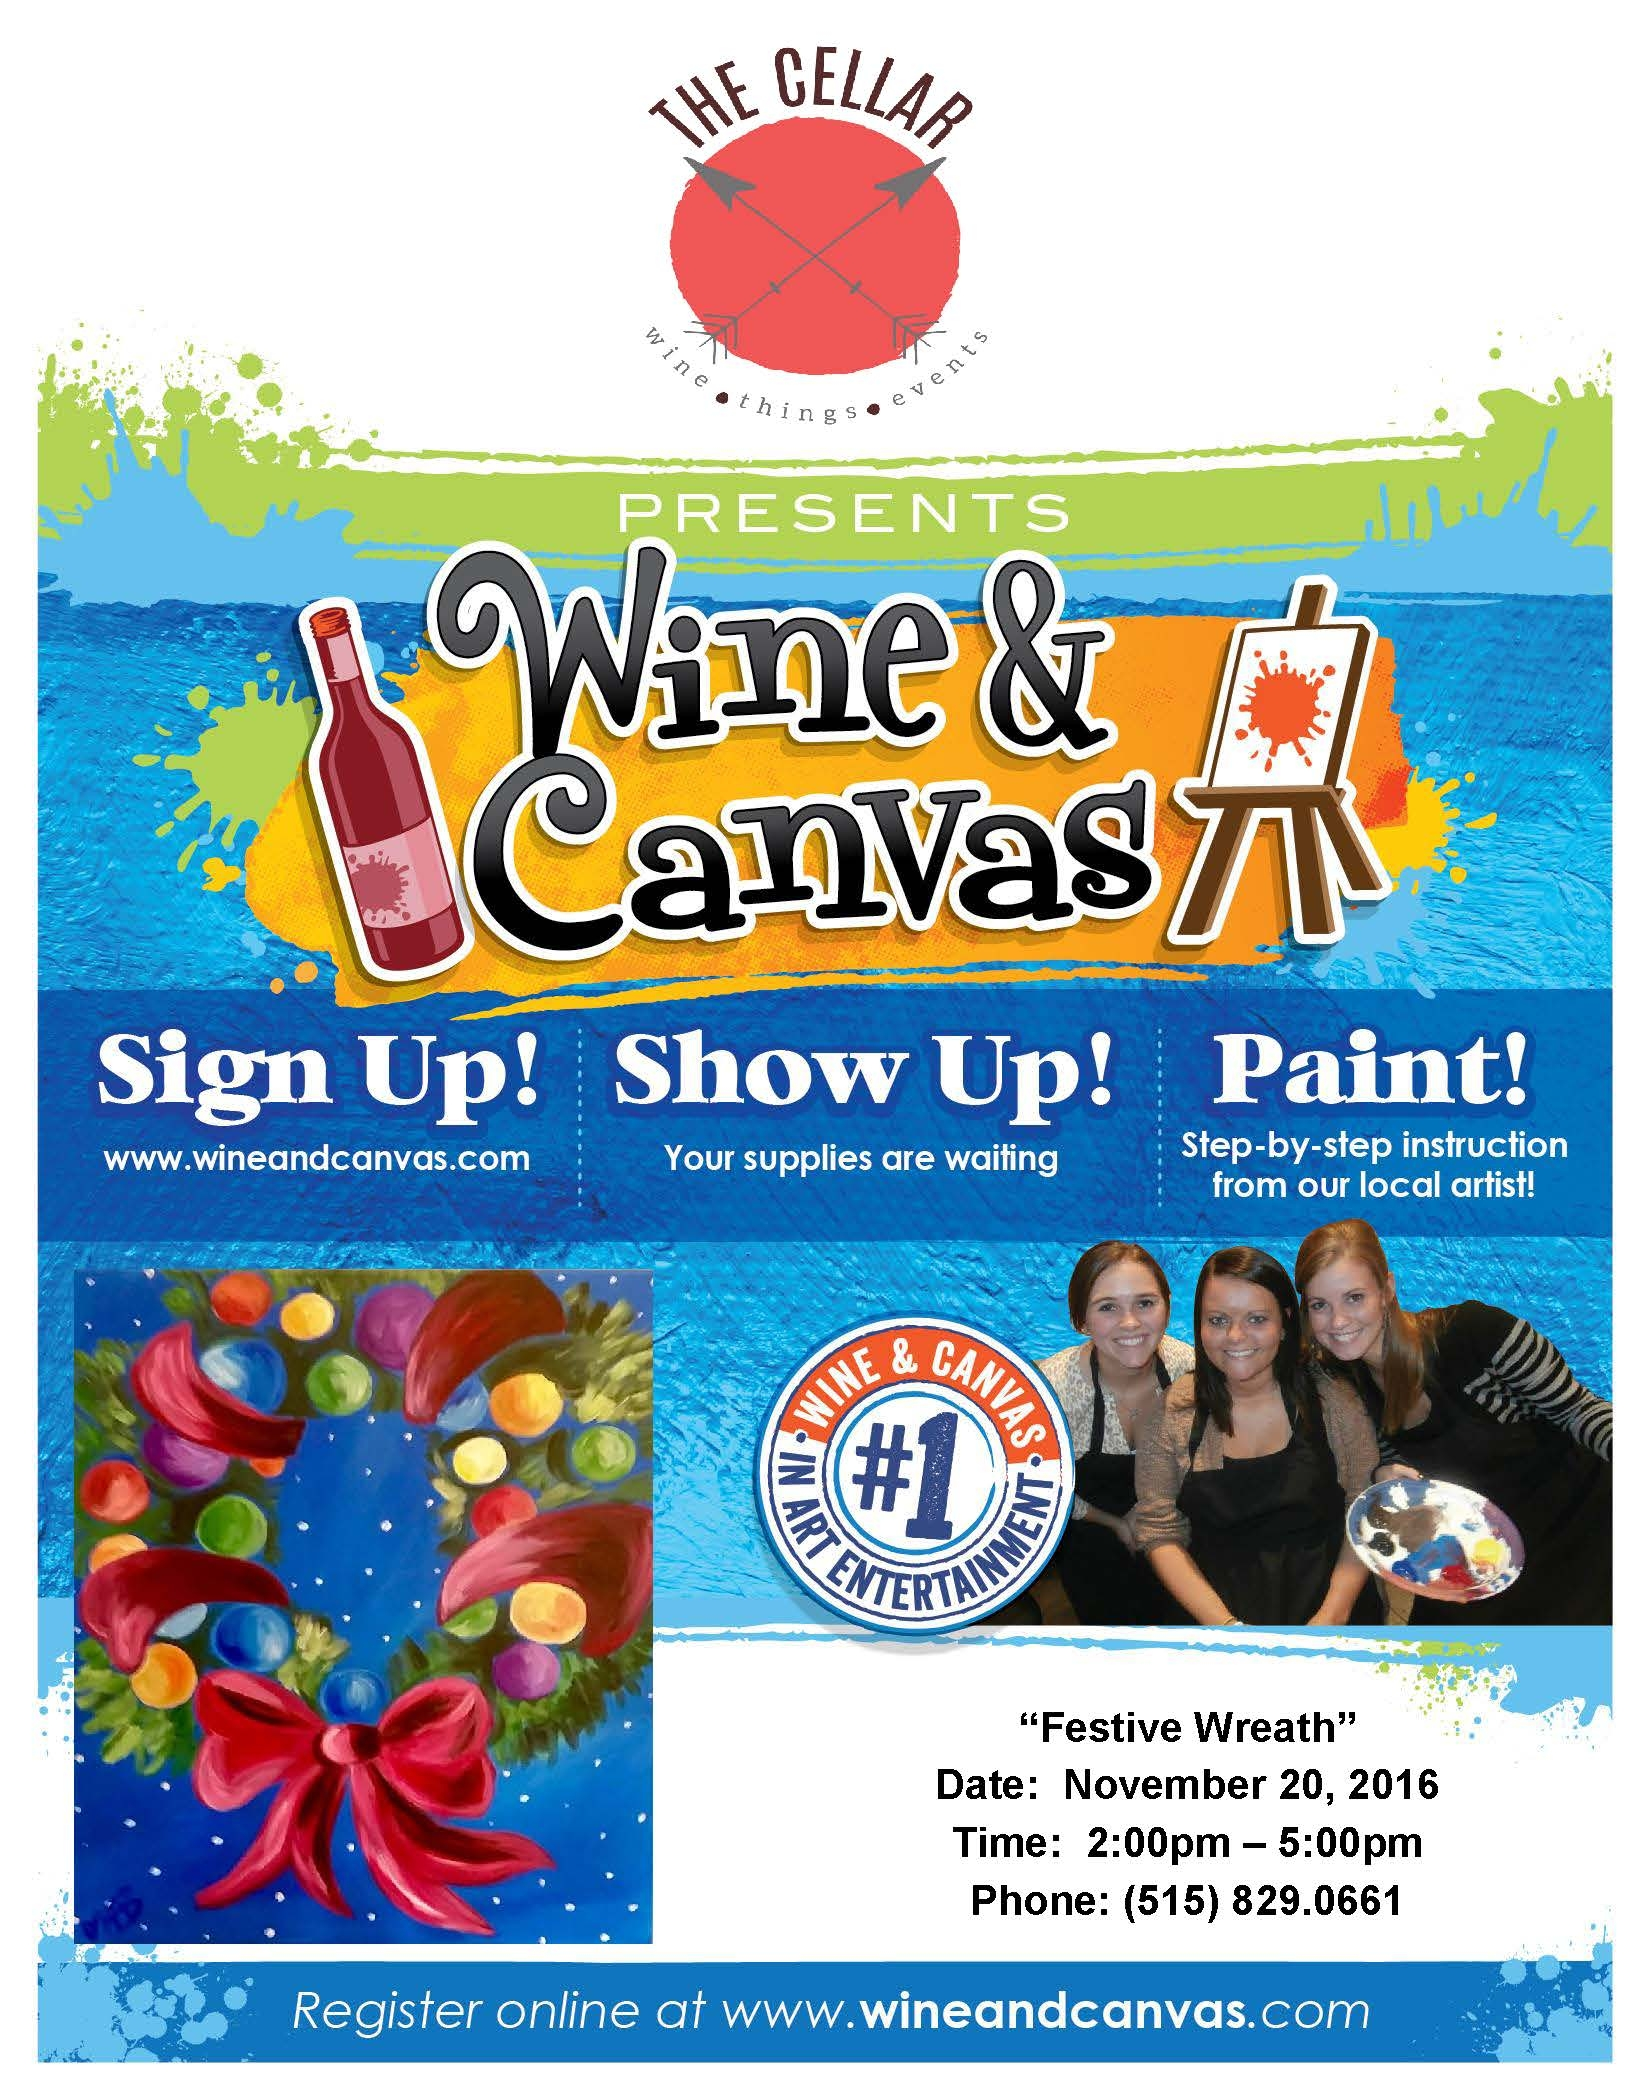 https://wineandcanvas.com/wine-and-canvas-calendar-des-moines-ia.html   or call (515) 829-0661 to sign up by phone.